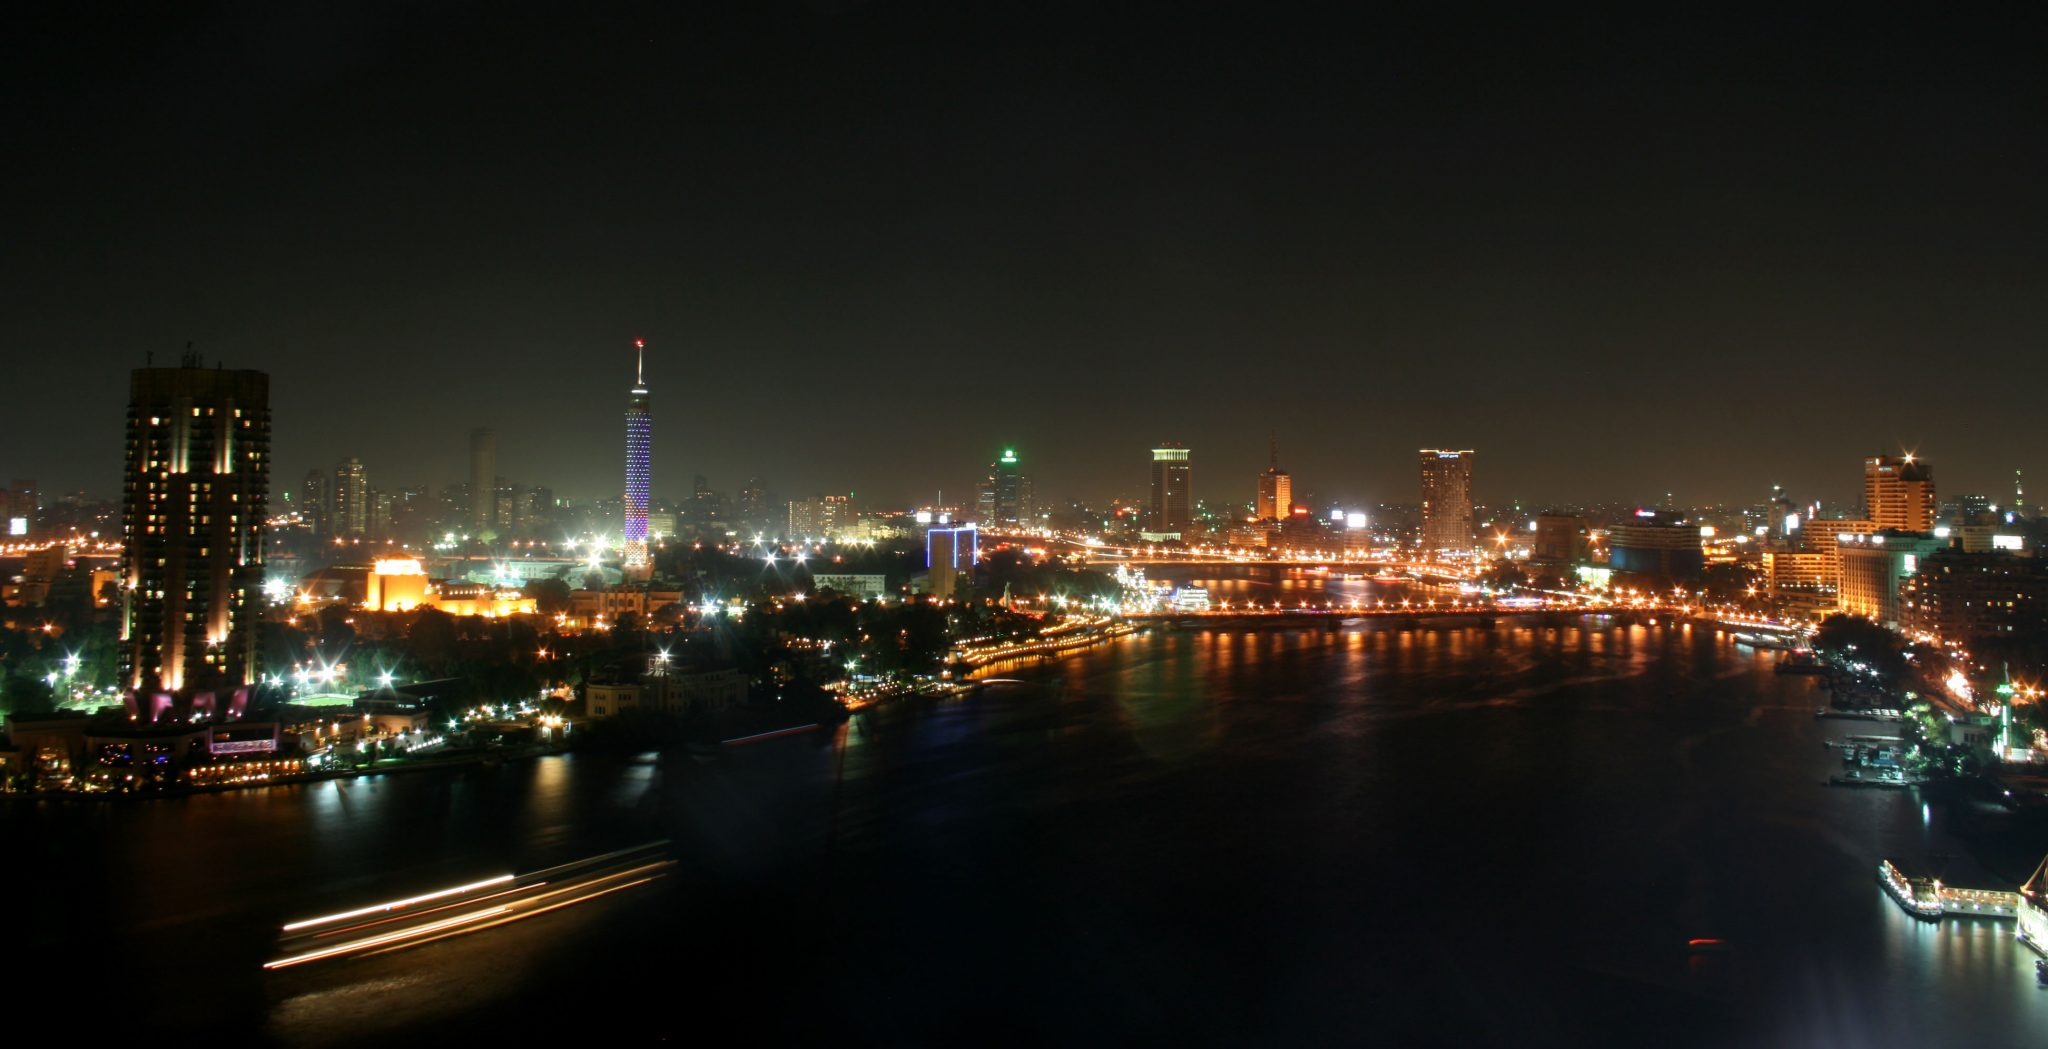 cairo, egypt at night